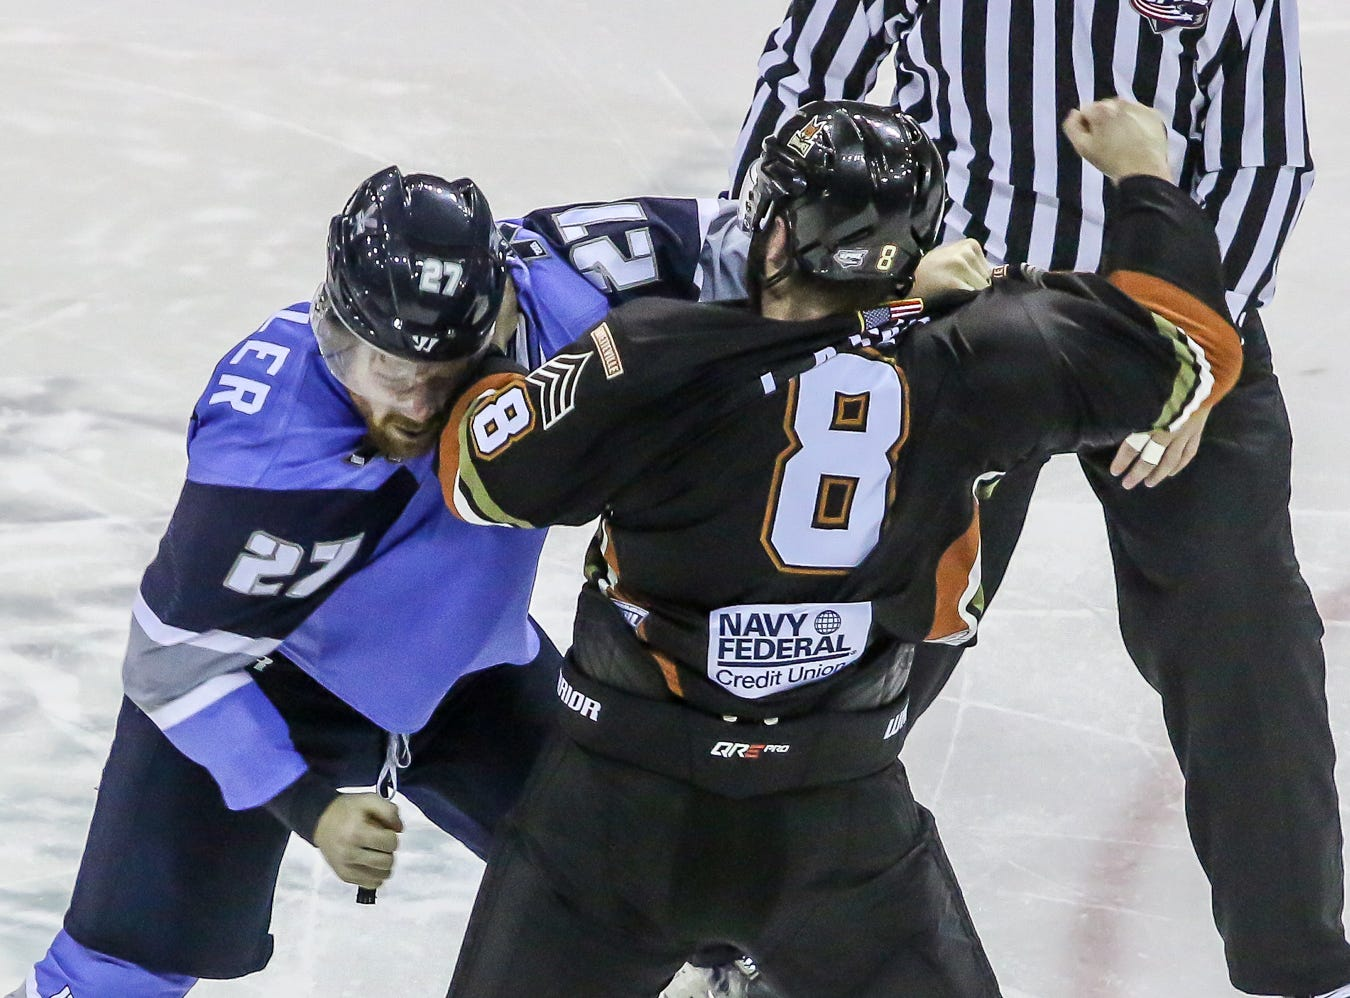 Pensacola's Jesse Kessler (27) and Fayetteville's Michael Casale (8) fight during the third period of the game at the Pensacola Bay Center on Saturday, January 5, 2019.